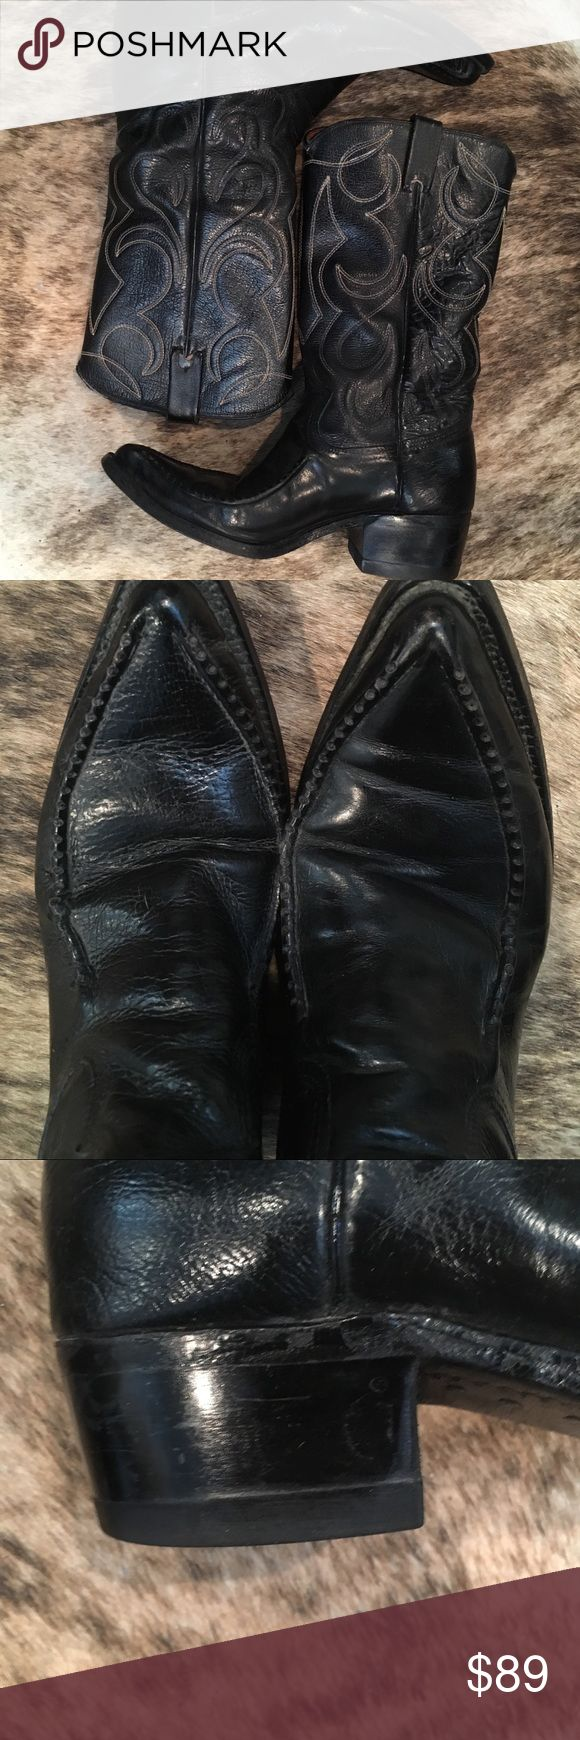 """Cowboy boots , genuine leather 7.5D Unbranded but quality comparable to Toni Lama!   Look at the unusual stitching detail on the toe. , the stitching on the shaft is blue and cream but very subtle. these are 7 1/2 D but will fit like a 8 1/2 to 9 women's depending on width of your foot. Sole intact Leather soft and pliable nice 1 1/2"""" heel,  a good everyday walking boot😁Shaft height is 13"""" , heel to toe measured 11 1/4"""". Width at ball of foot  measures 3 3/4"""". Compare to your own boots for…"""